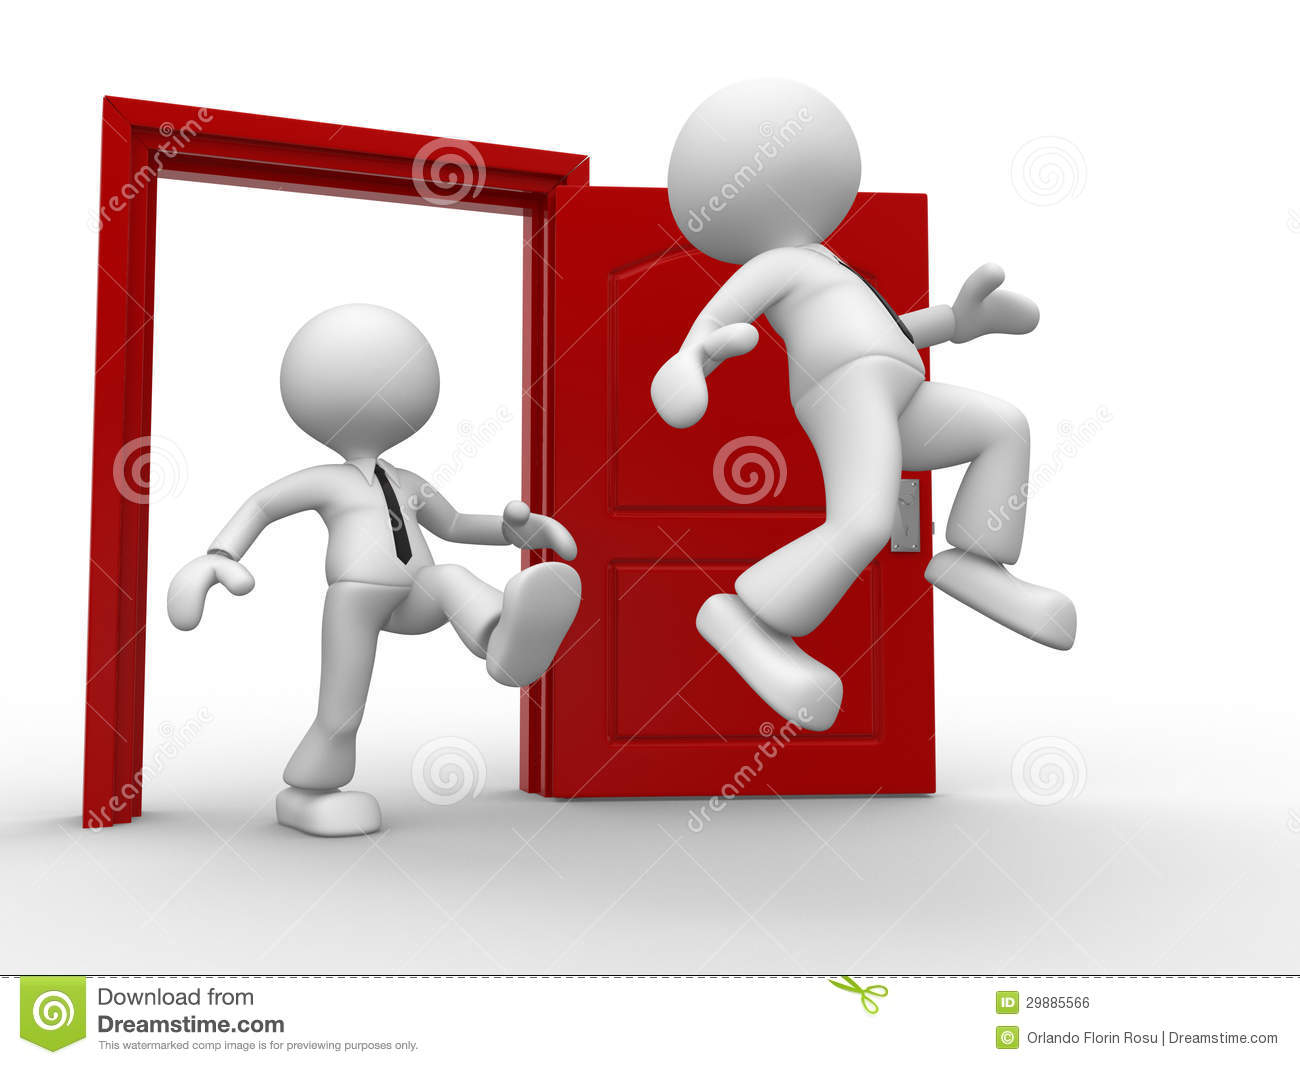 Royalty Free Stock Image D People Man Person Kicking Behind Opponent Open Door Image29885566 on man opening door